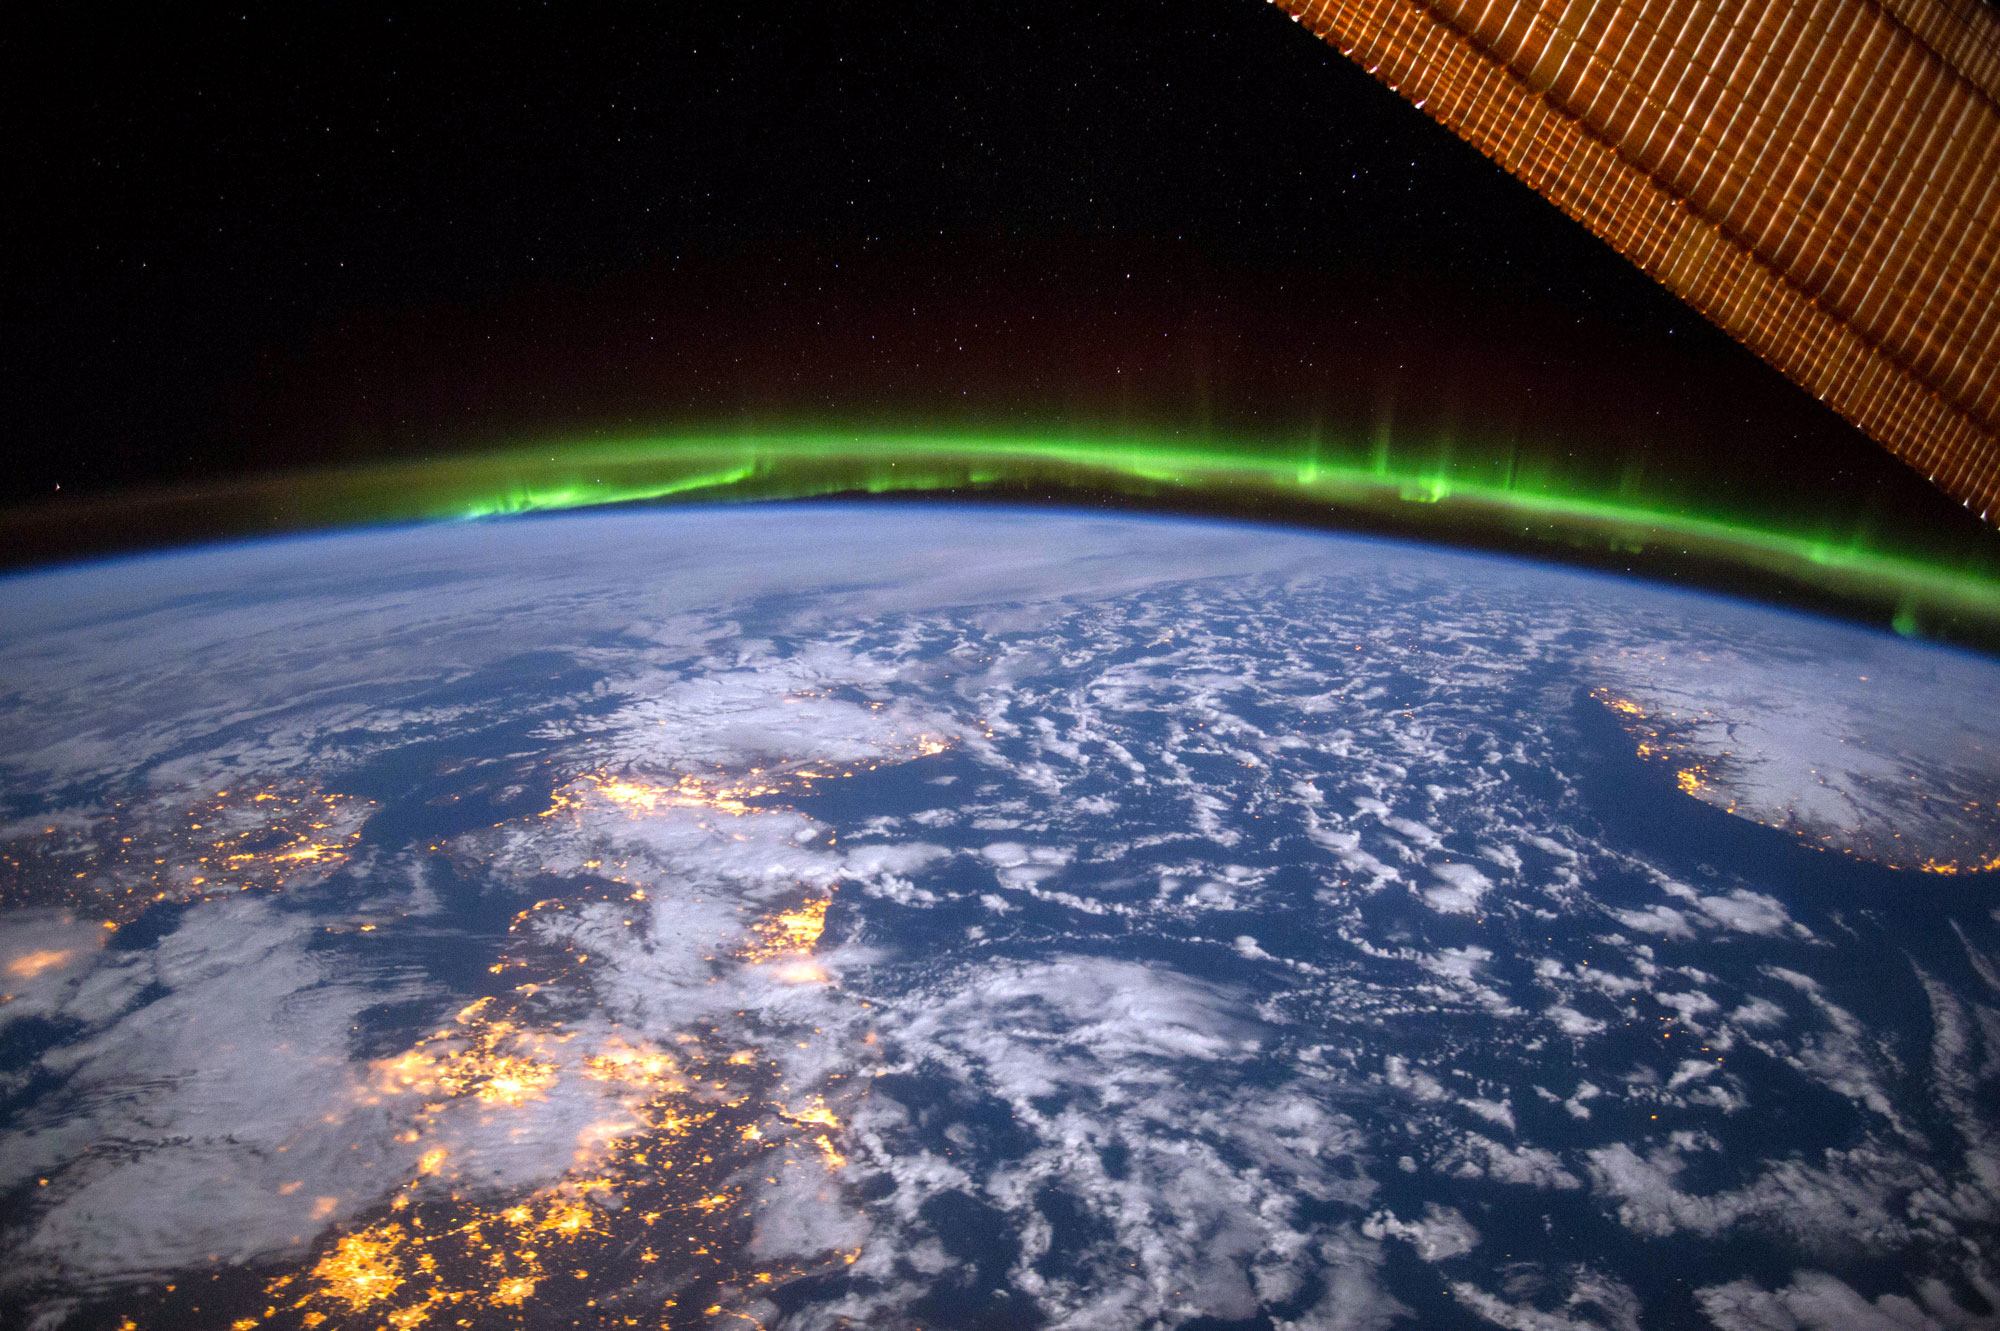 NASA's Space Photography Brings the Cosmos to Earth - Artsy